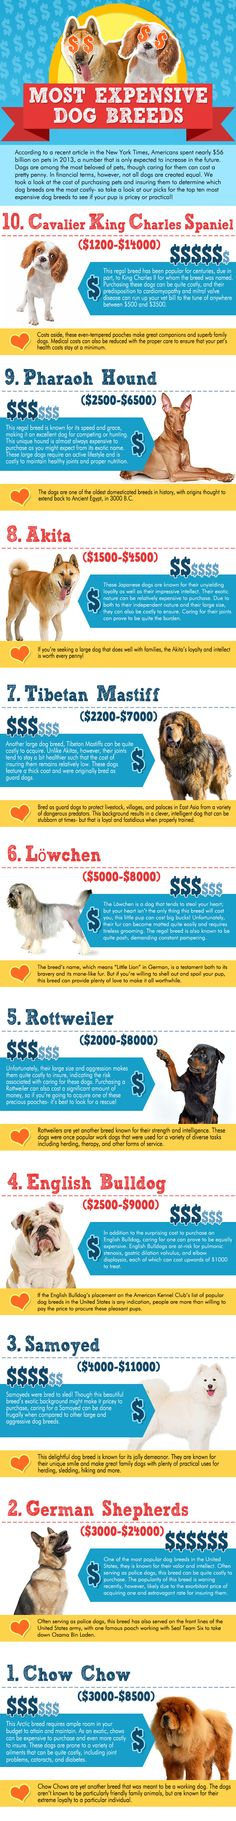 The most expensive #dog breeds - According to a recent article in the New York Times, Americans spent nearly $56 billion on pets in 2013. Can you guess which dog breeds are the most expensive?